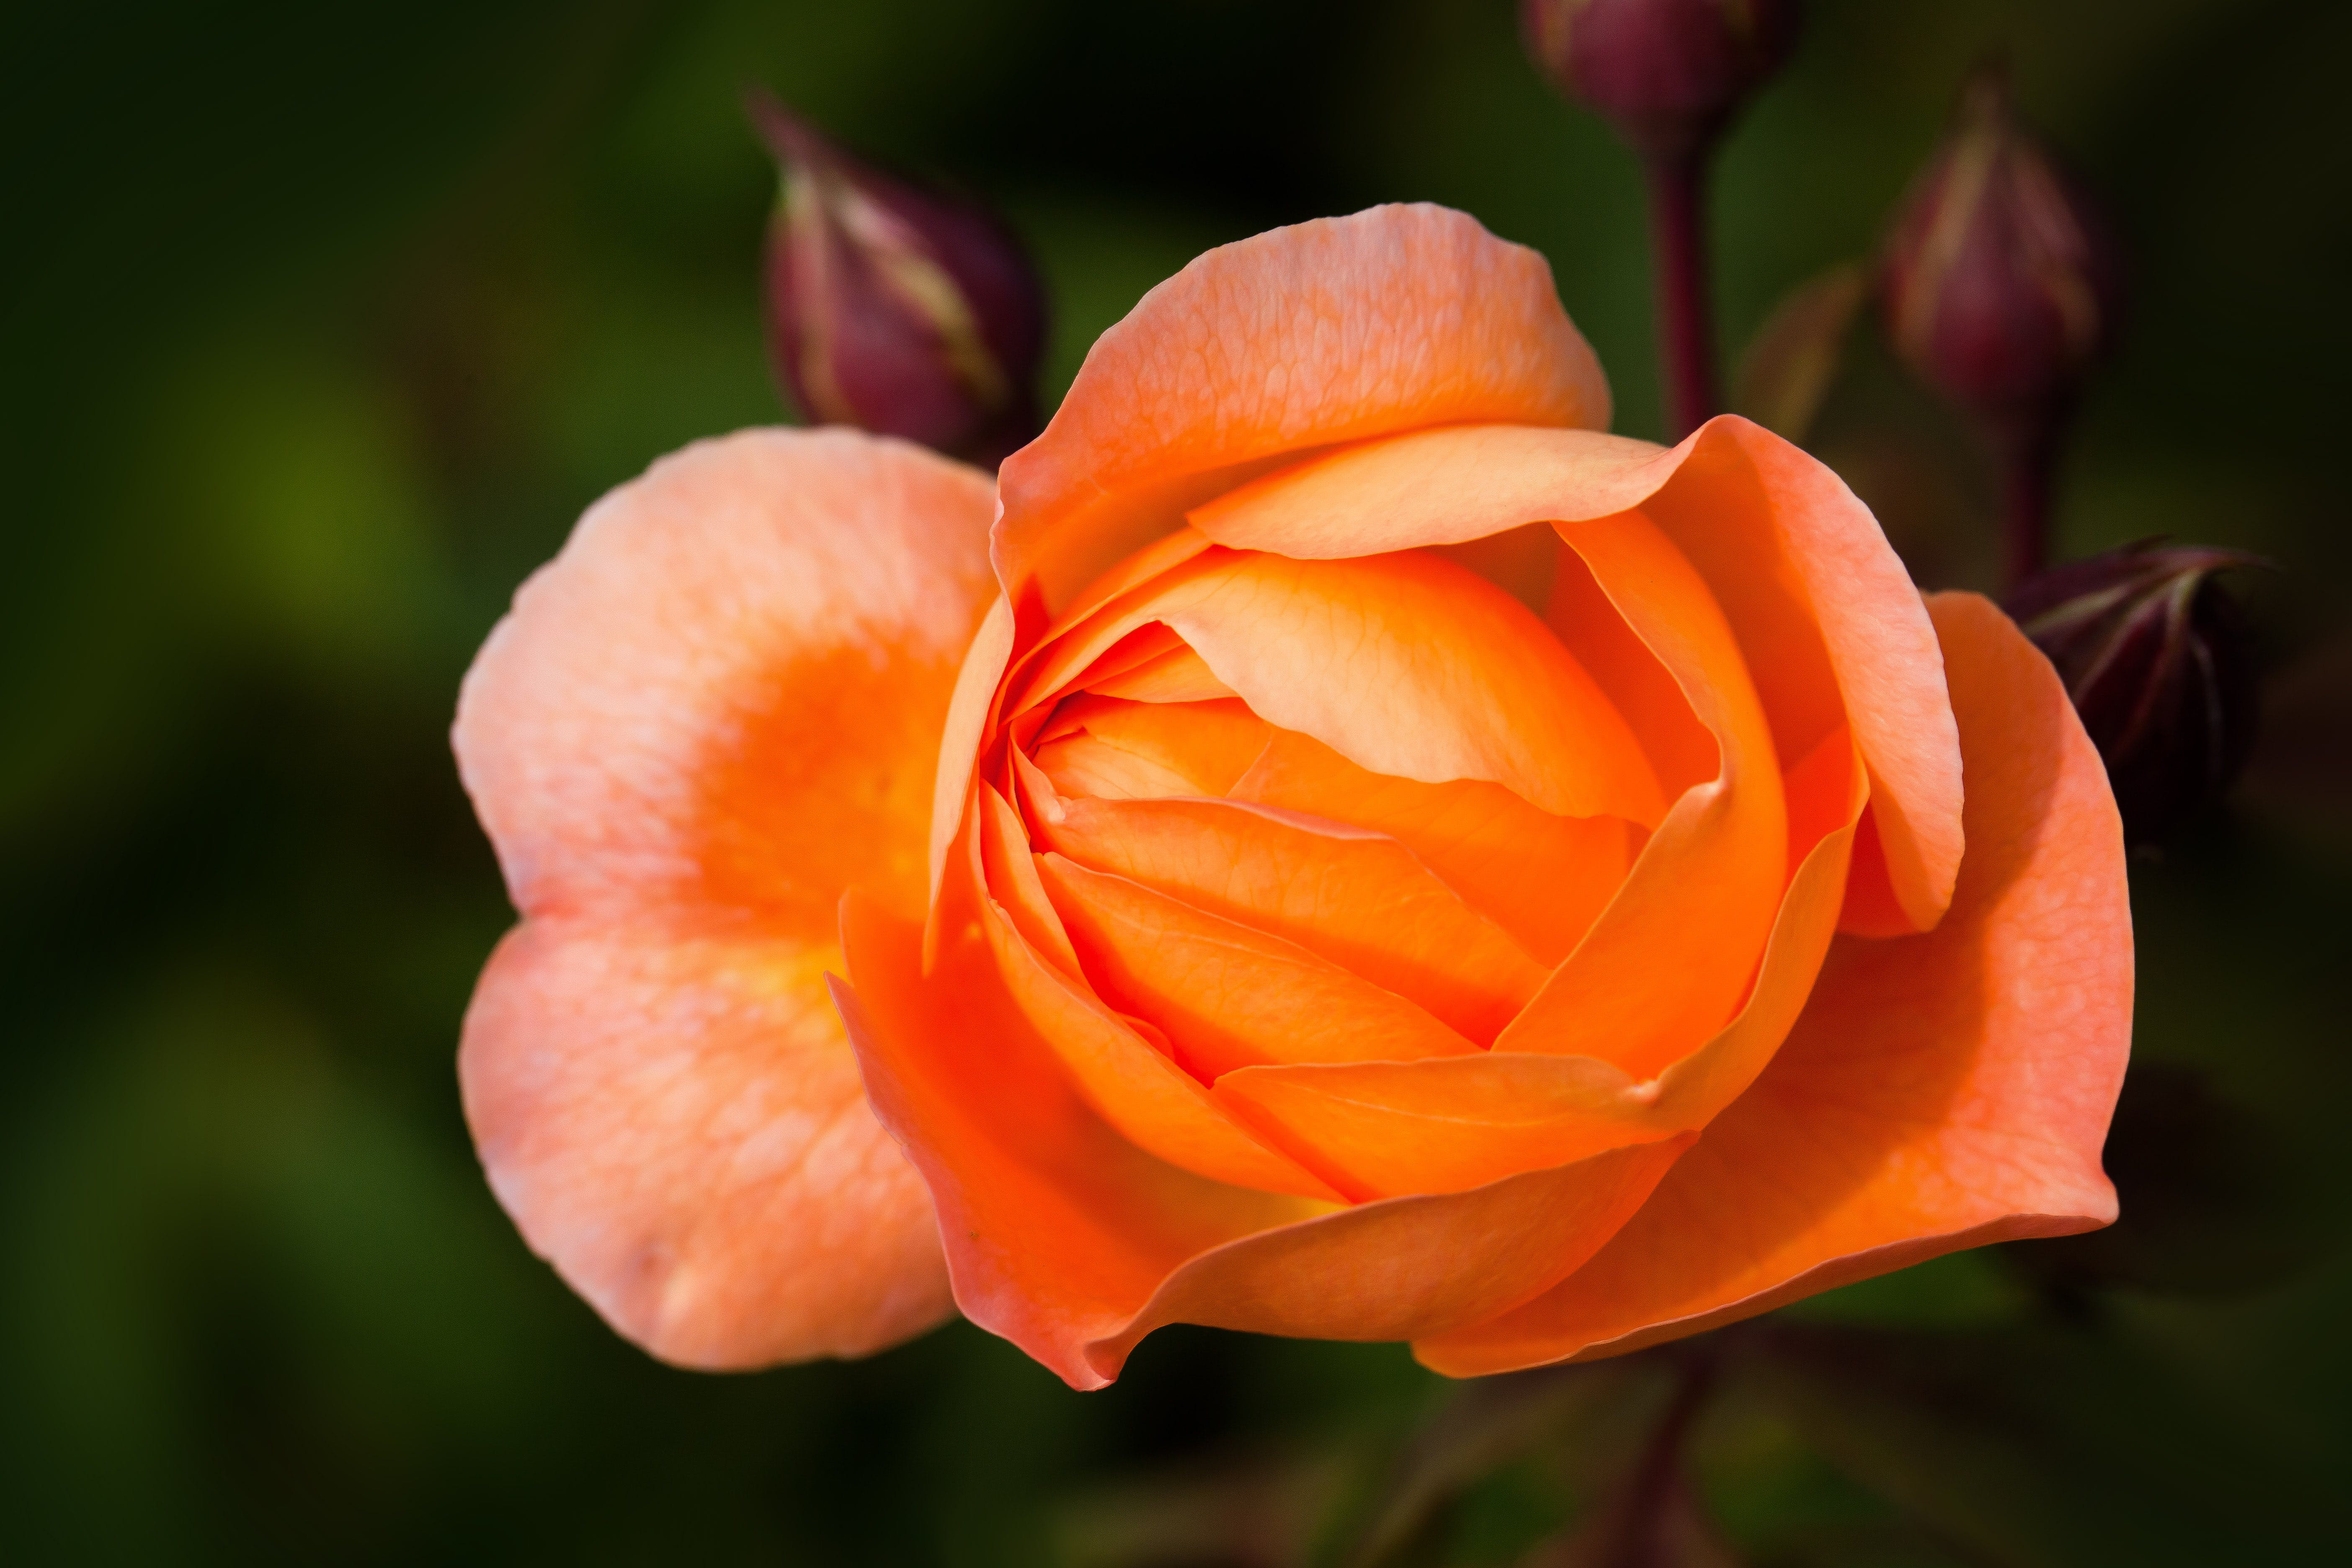 Selective Focus Photography of Orange Rose